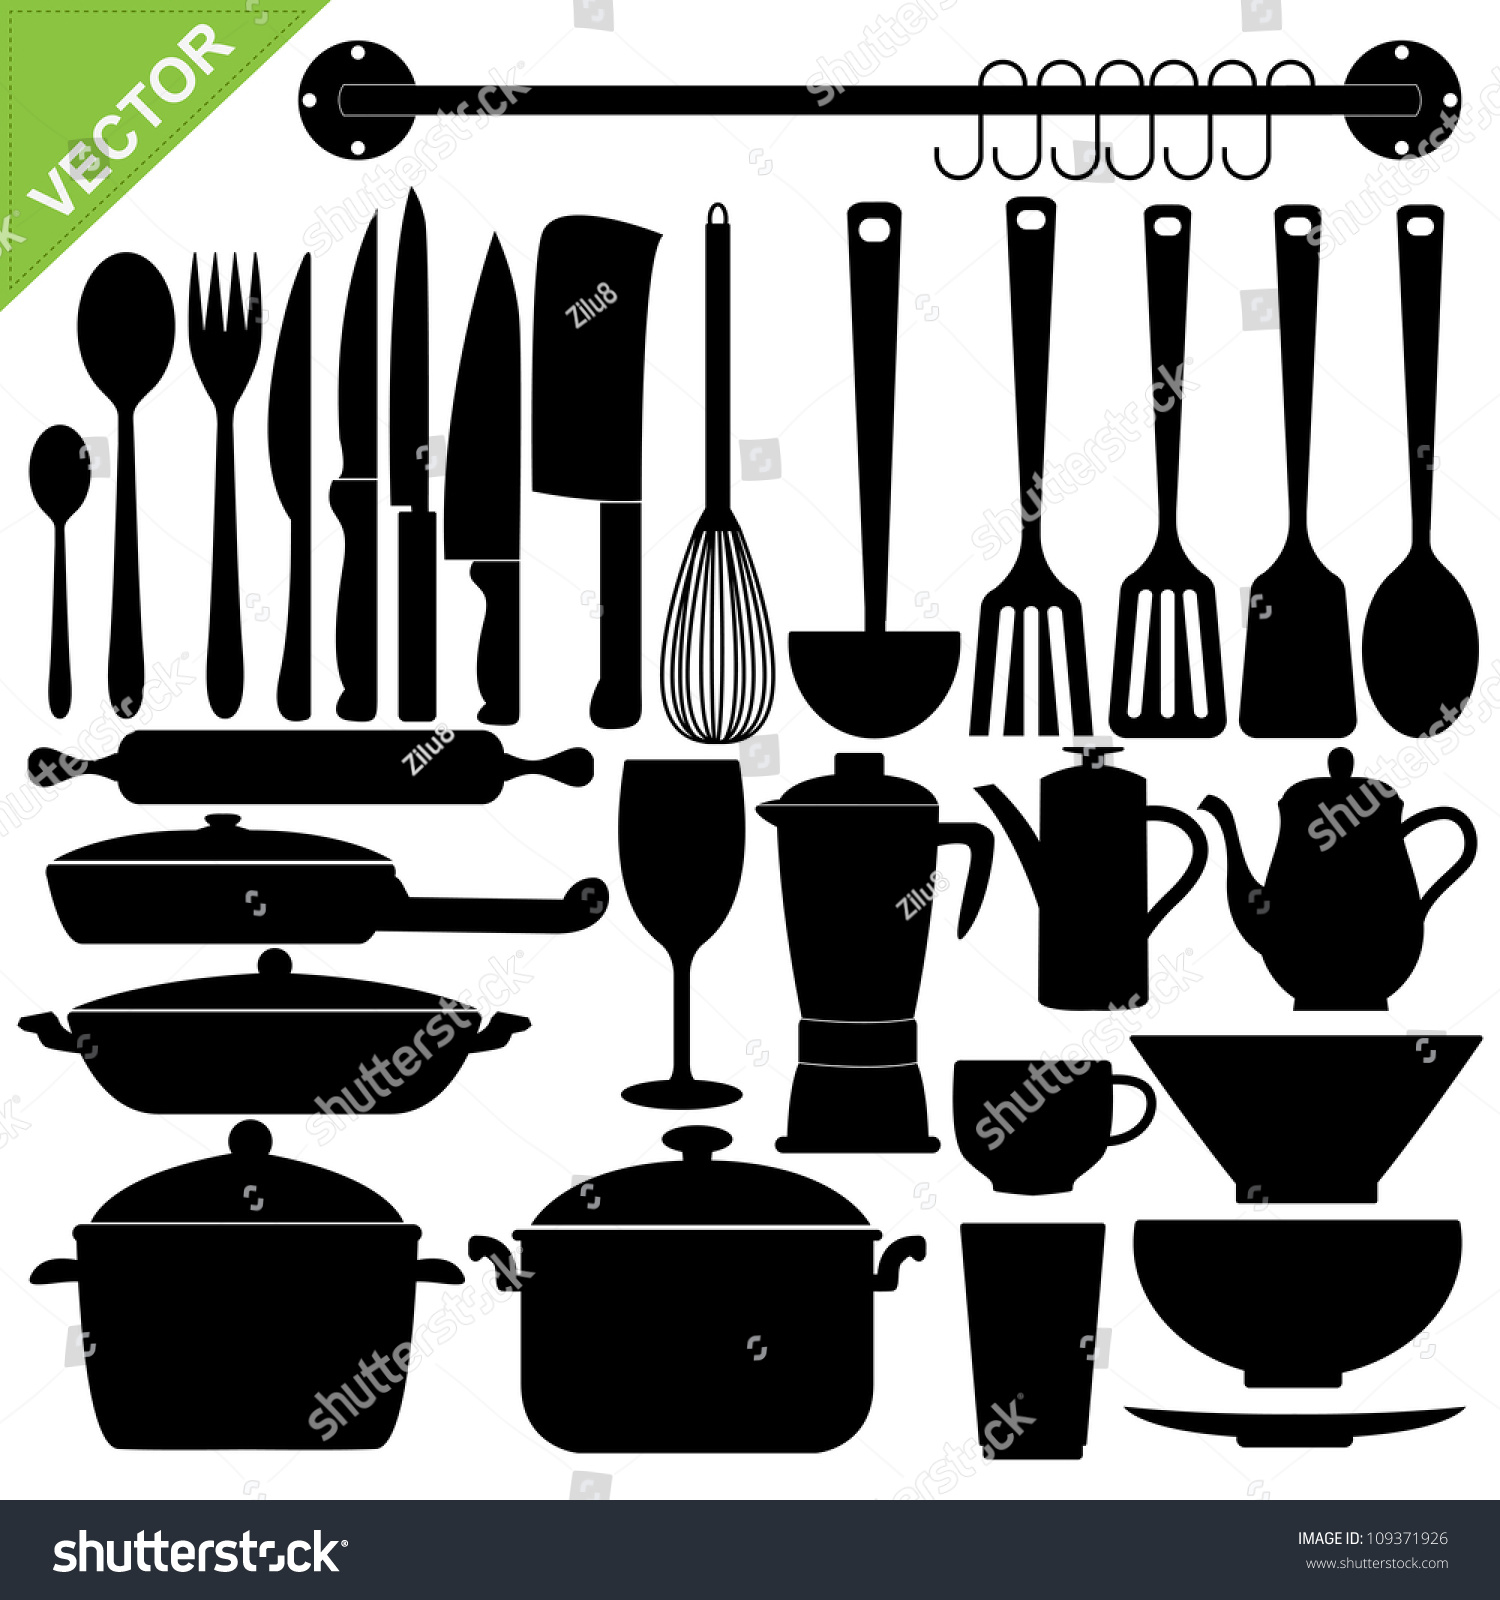 Set Kitchen Tools Silhouettes Vector Stock Vector ...